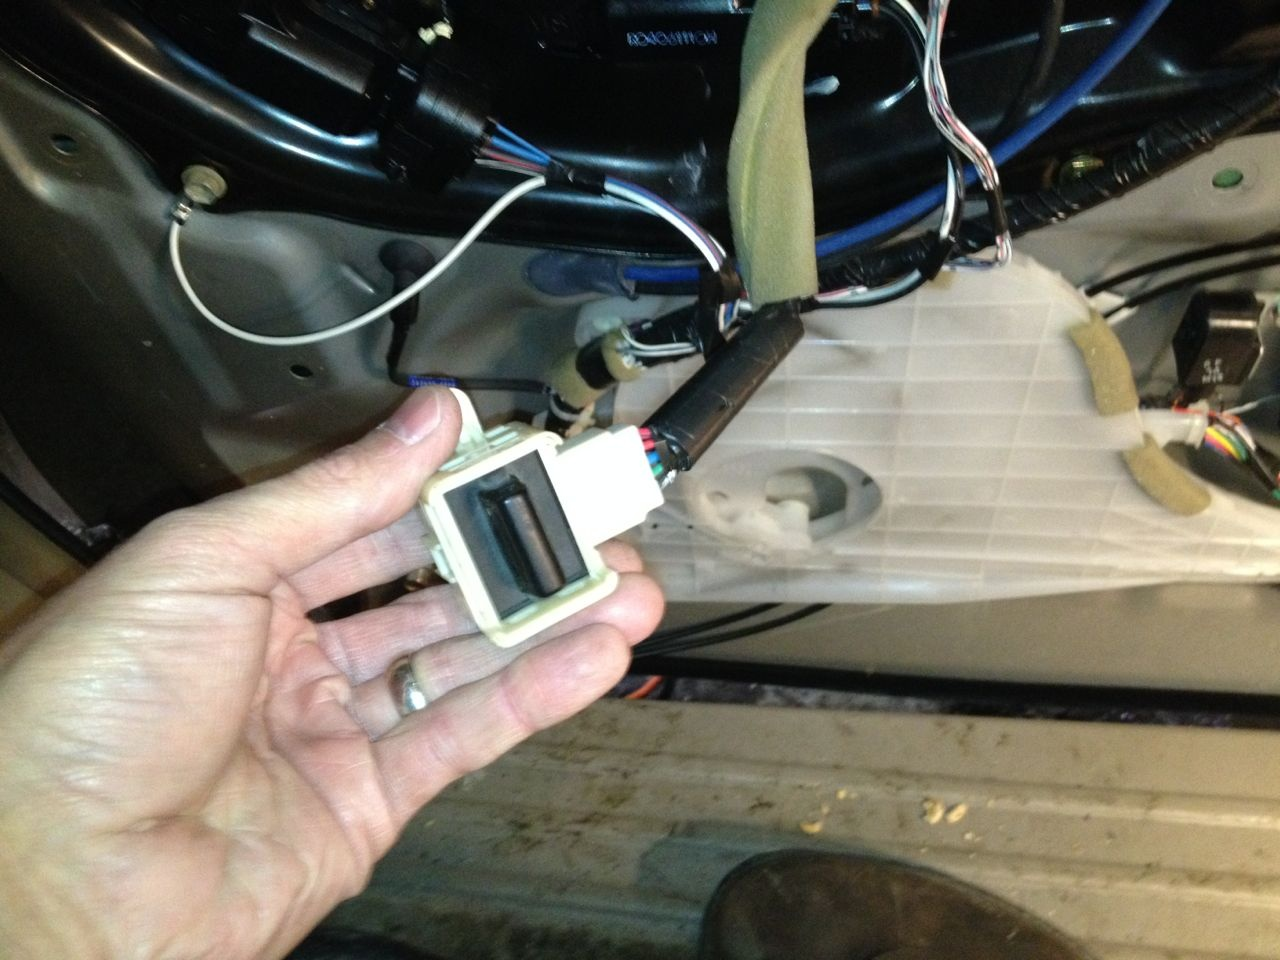 Toyota Sienna Questions 2004 Cargurus Fuse Diagram Sliding Door And Had Removed The Local Switch Attempted To Roll Up Window From A Remote But It Would Not At